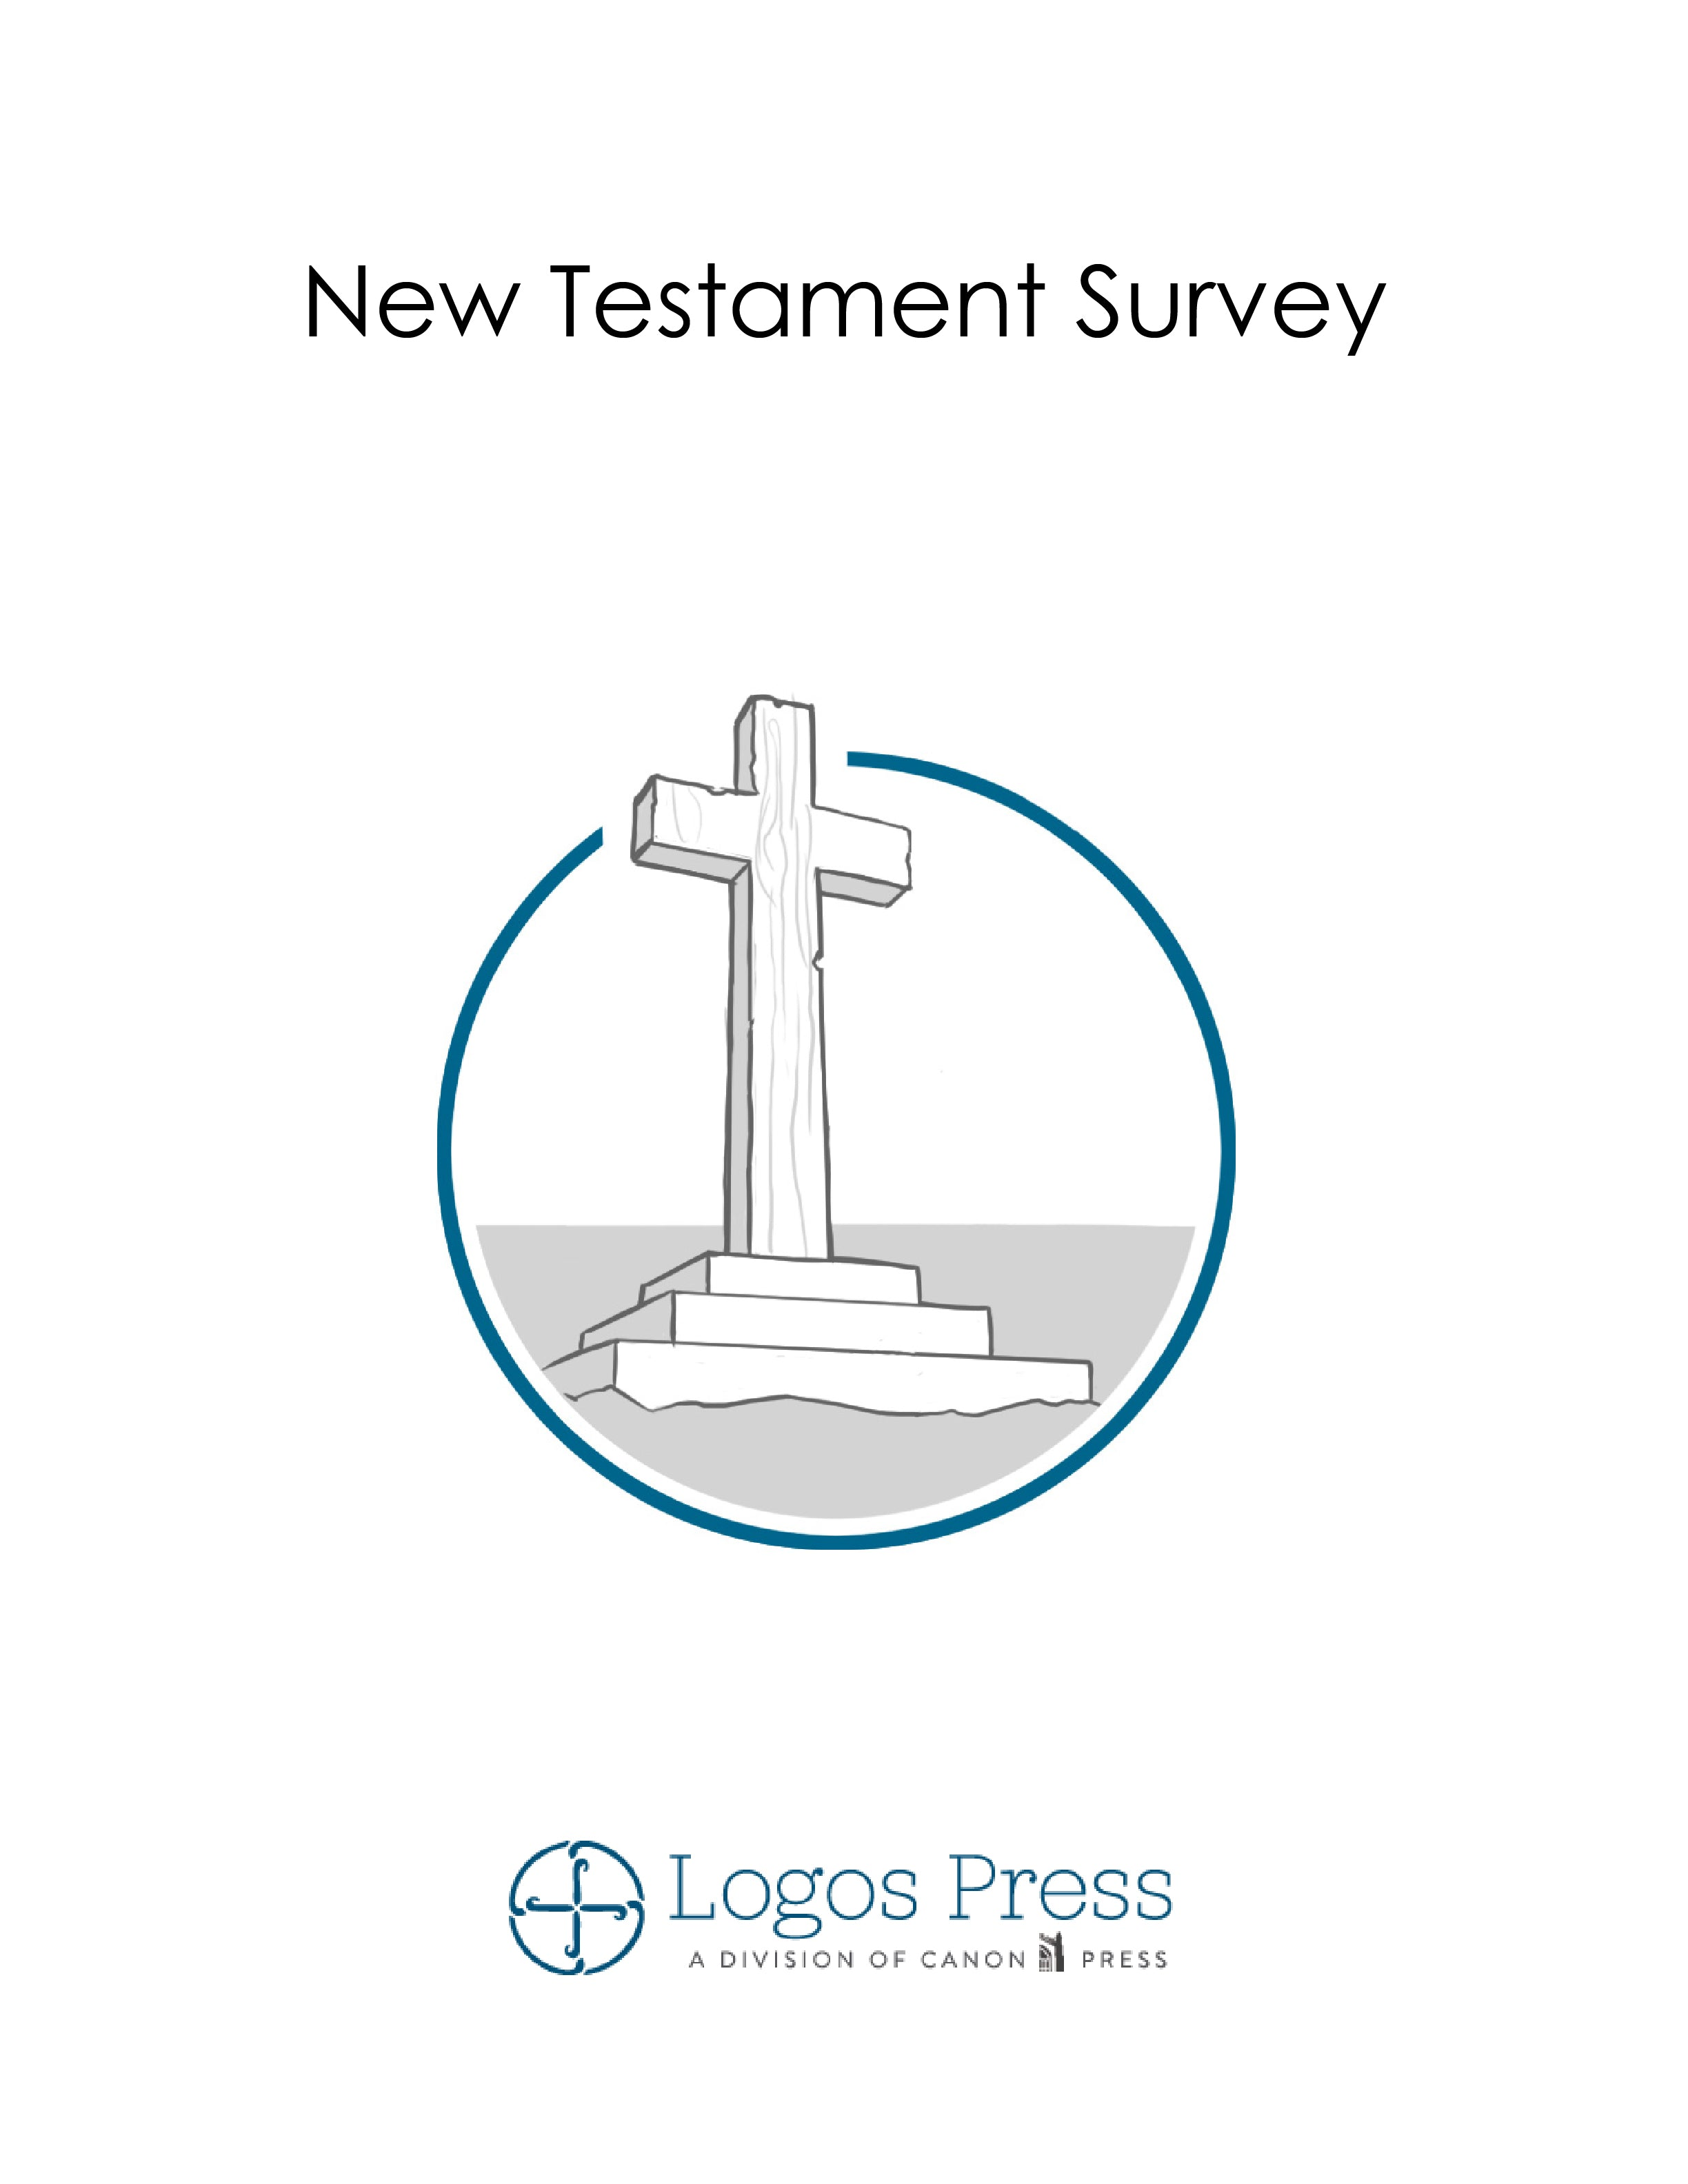 New Testament Survey Package